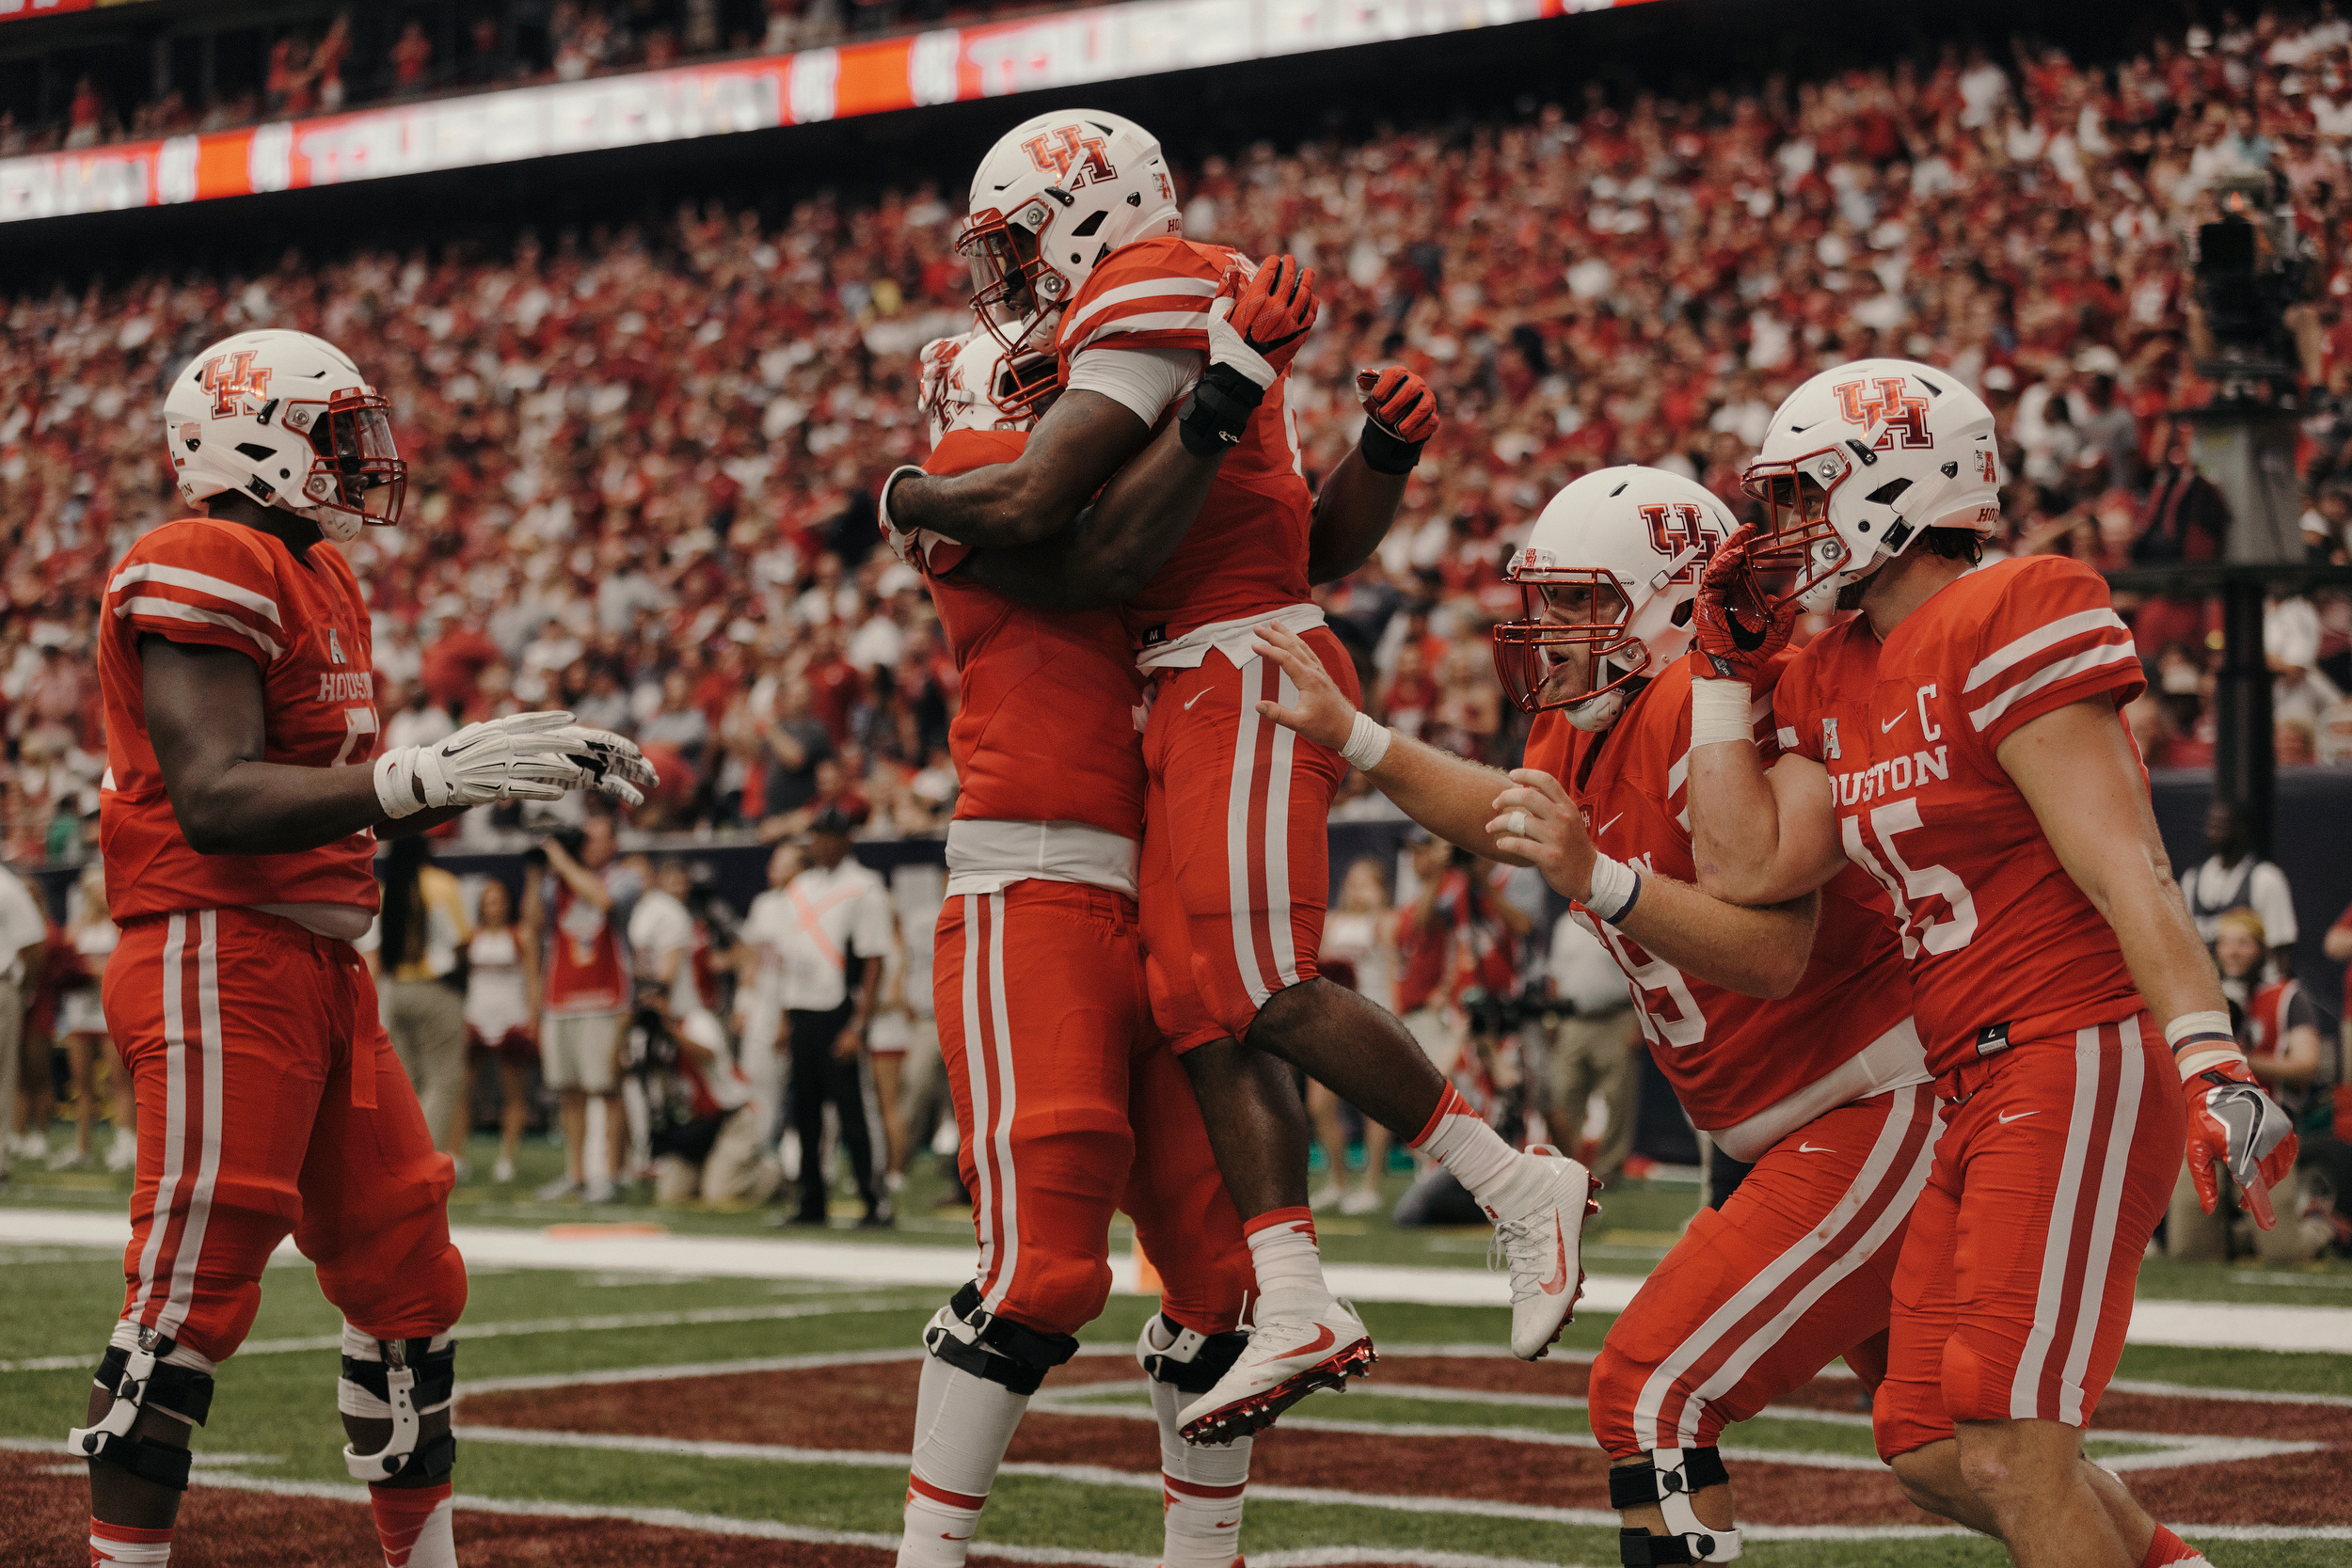 The University of Houston team celebrates an early touchdown. Todd Spoth for The New York Times.